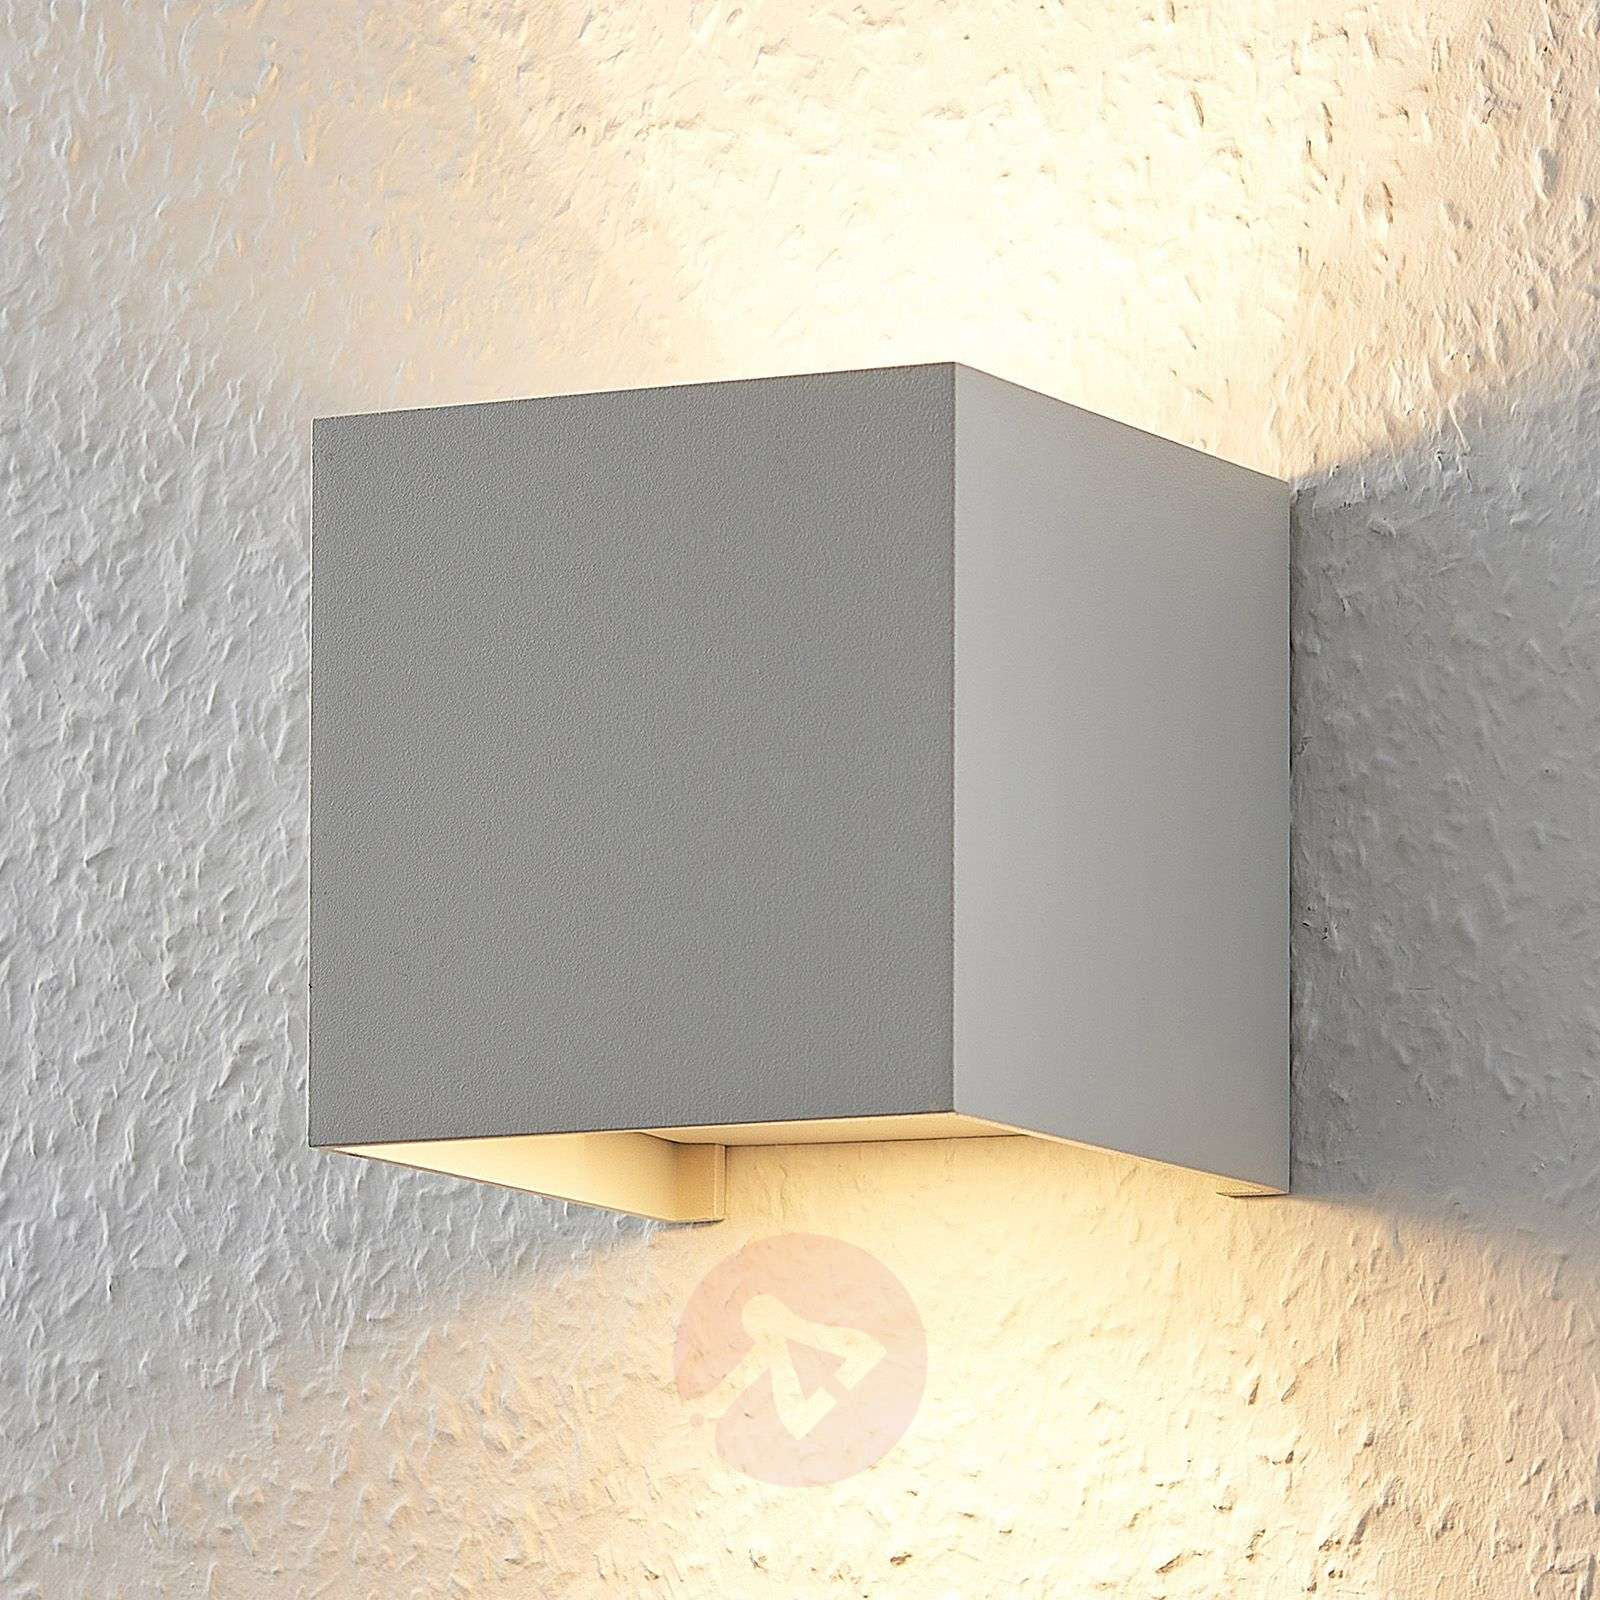 Acquista applique a led a cubo zuzana g dimmerabile lampade